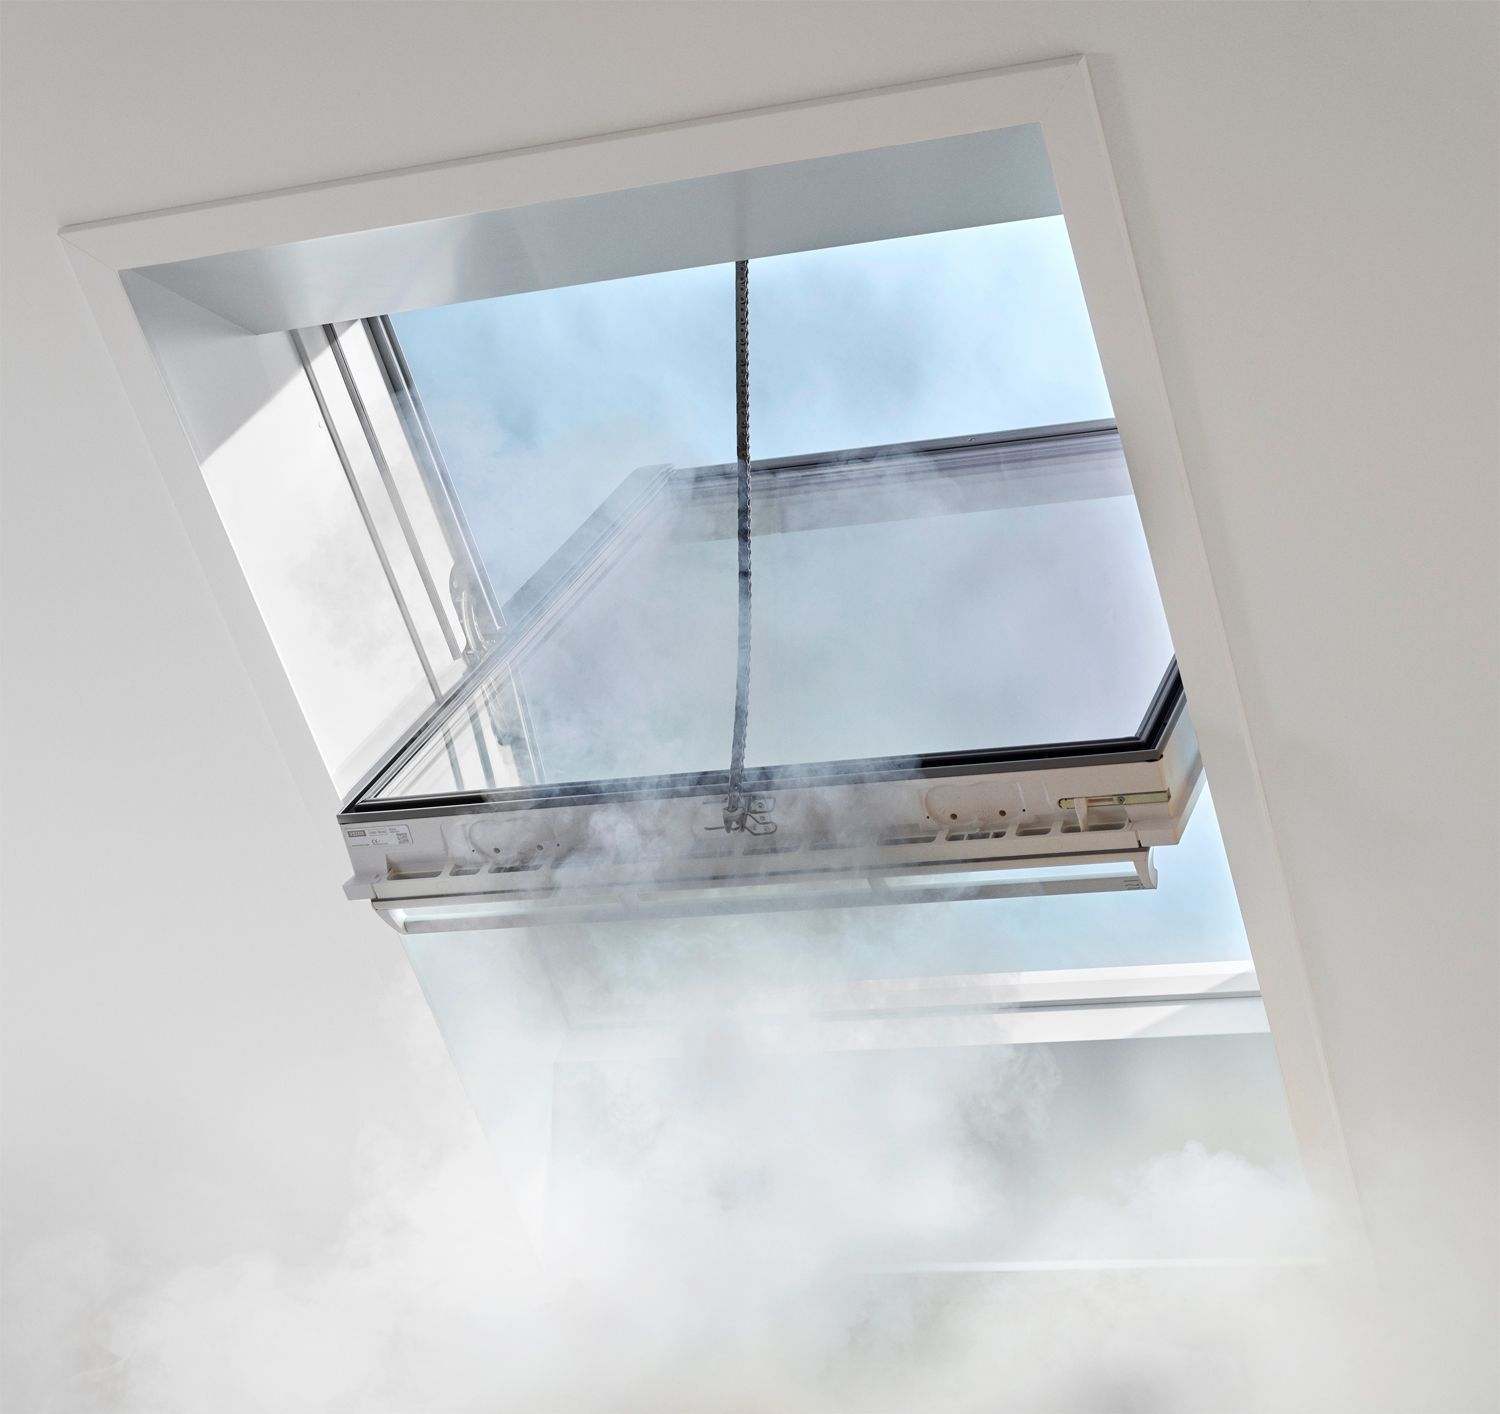 VELUX Smoke Ventilation Systems